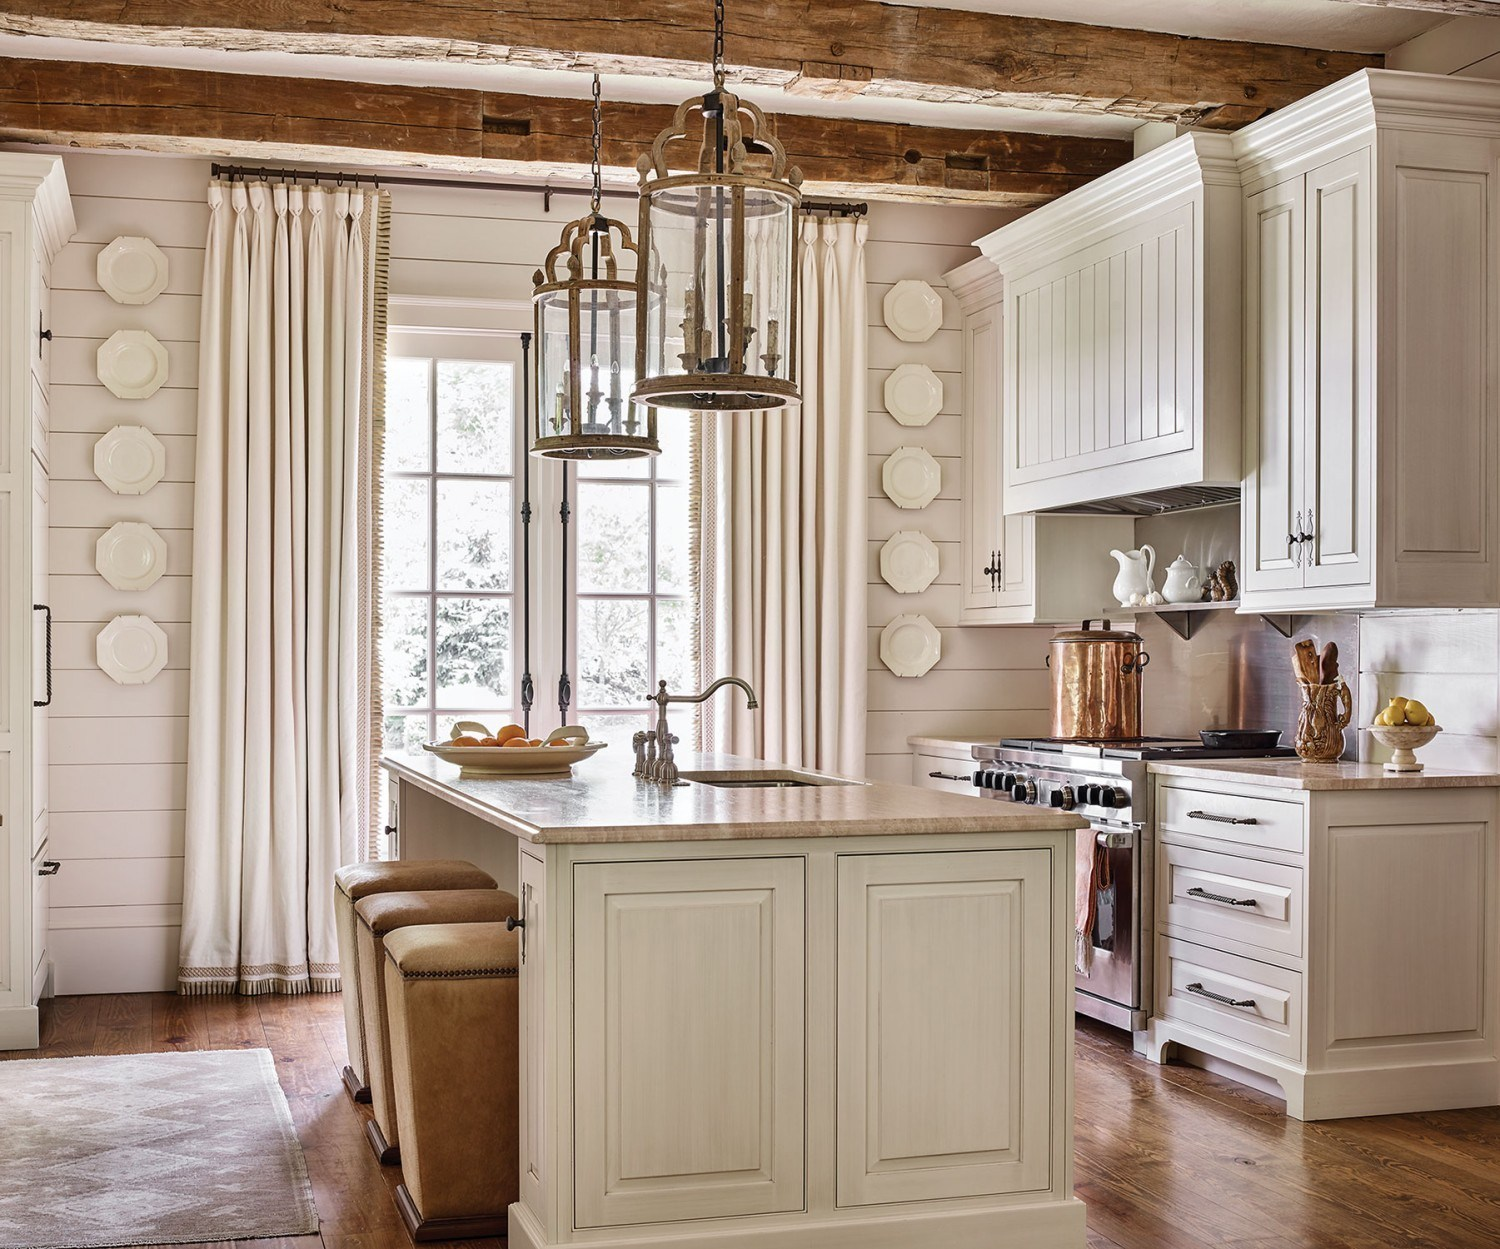 2020 Kitchen Trends.Kitchen Trends 2020 Loretta J Willis Designer